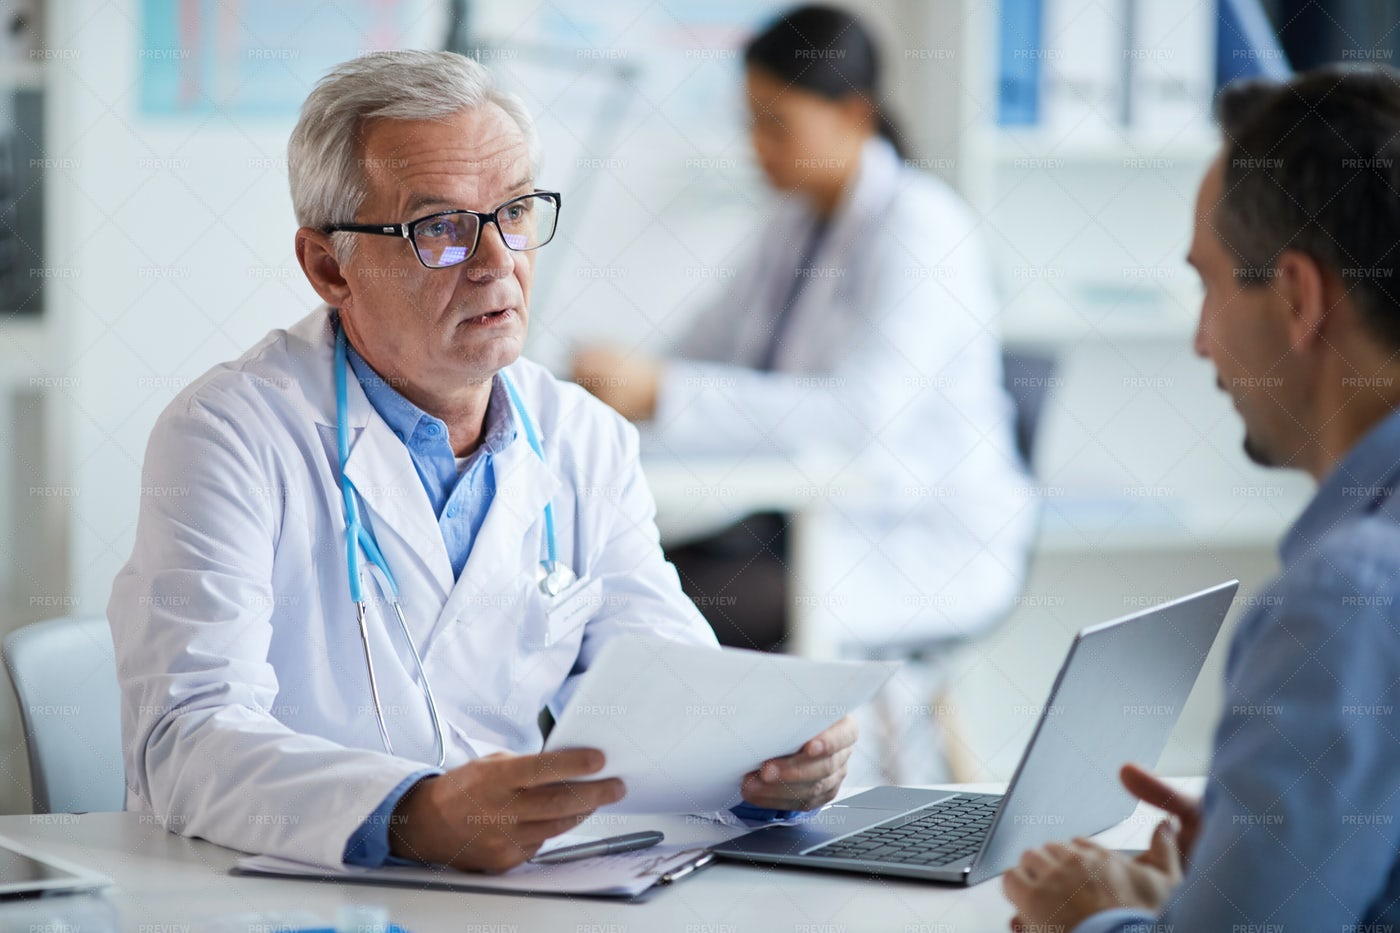 Doctor Giving Diagnosis To Patient: Stock Photos